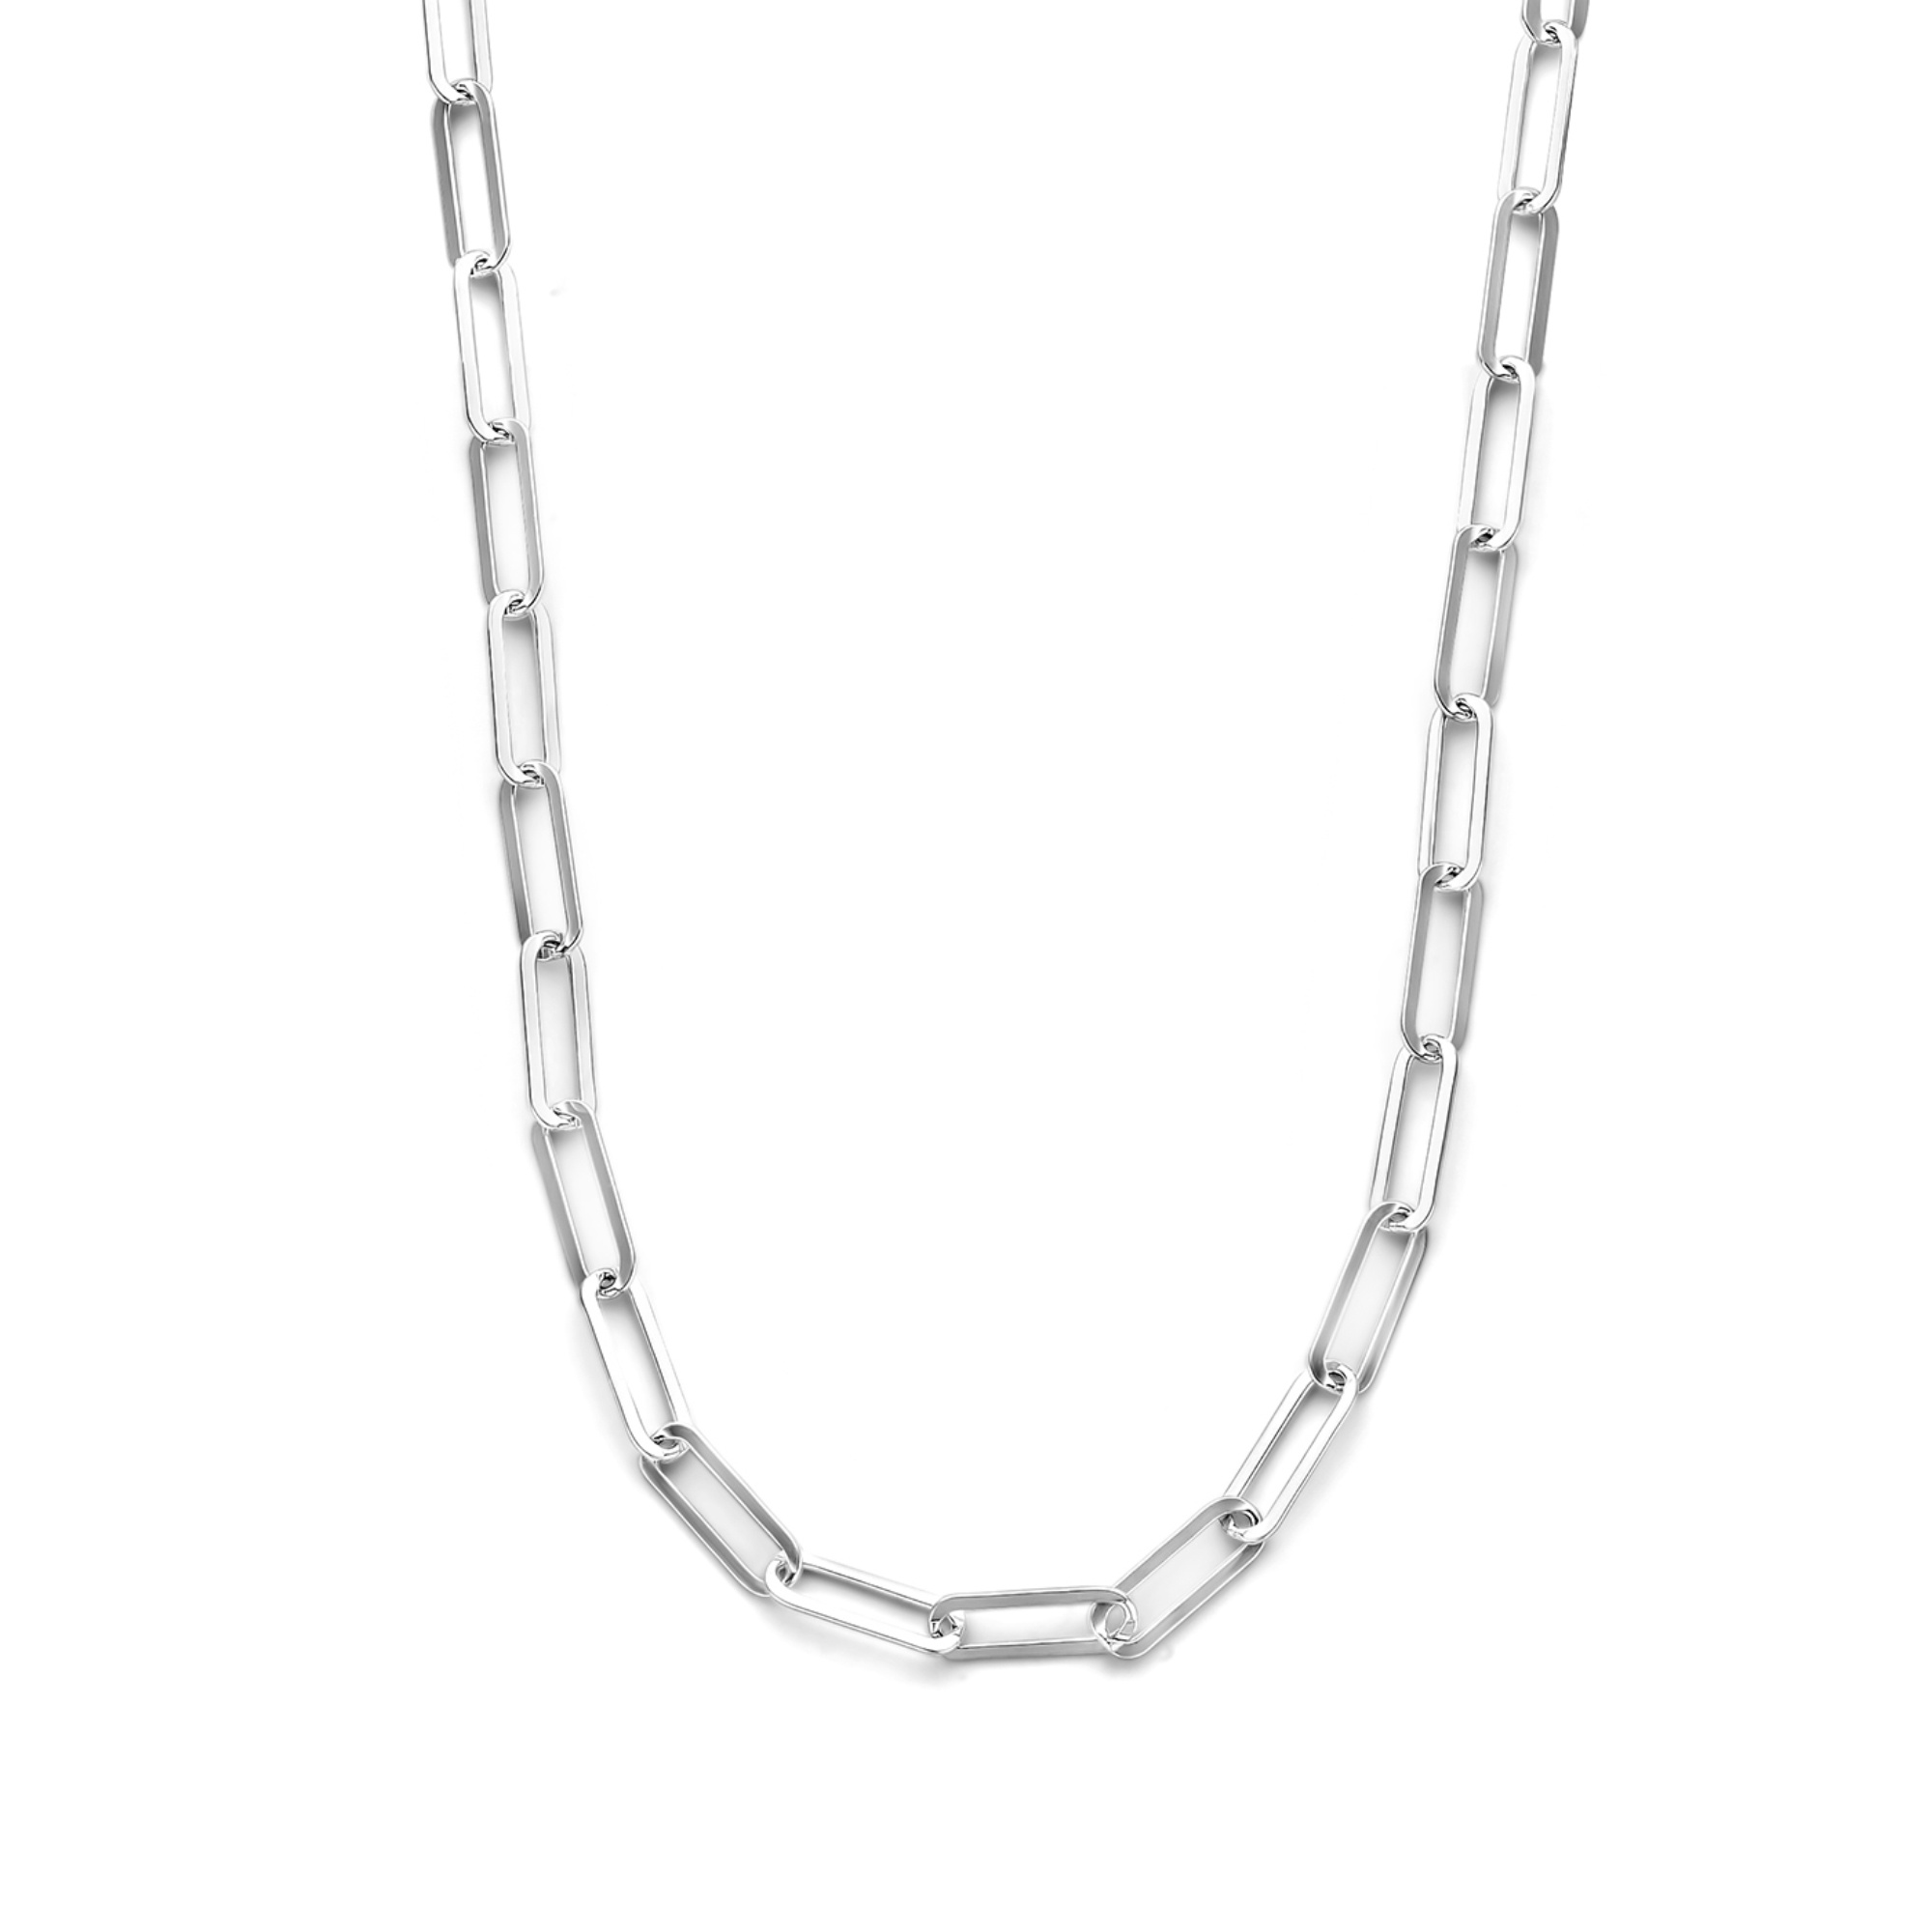 Selected Jewels Emma Vieve halsband i 925 sterling silver